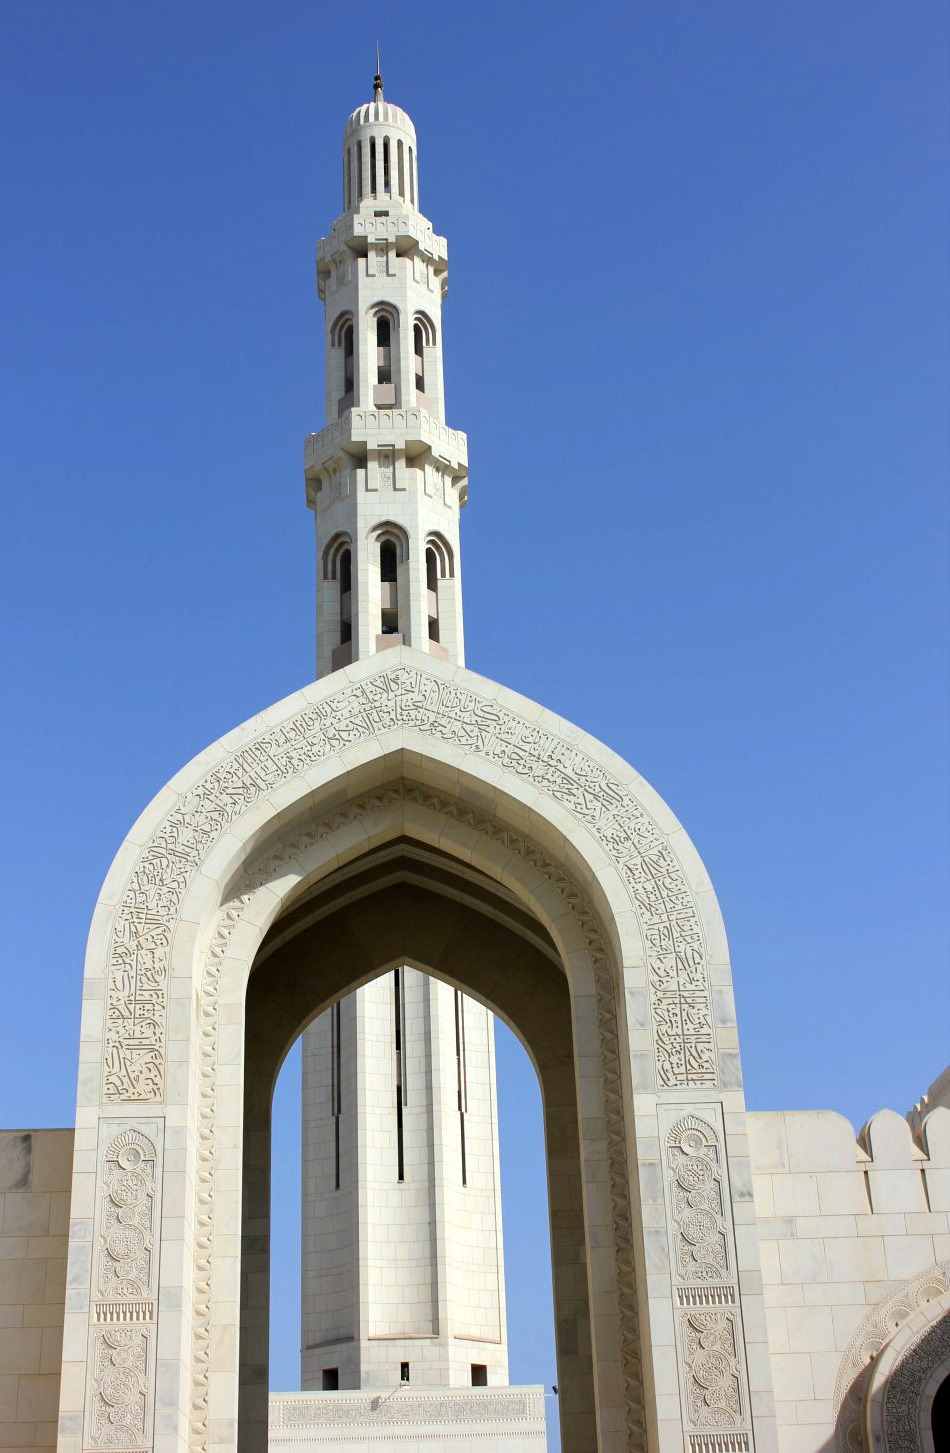 One of the minarets at the Sultan Qaboos Grand Mosque behind a white arch covered with calligraphy in front of a blue sky - my tips for spending 24 hours in Muscat, Oman with kids